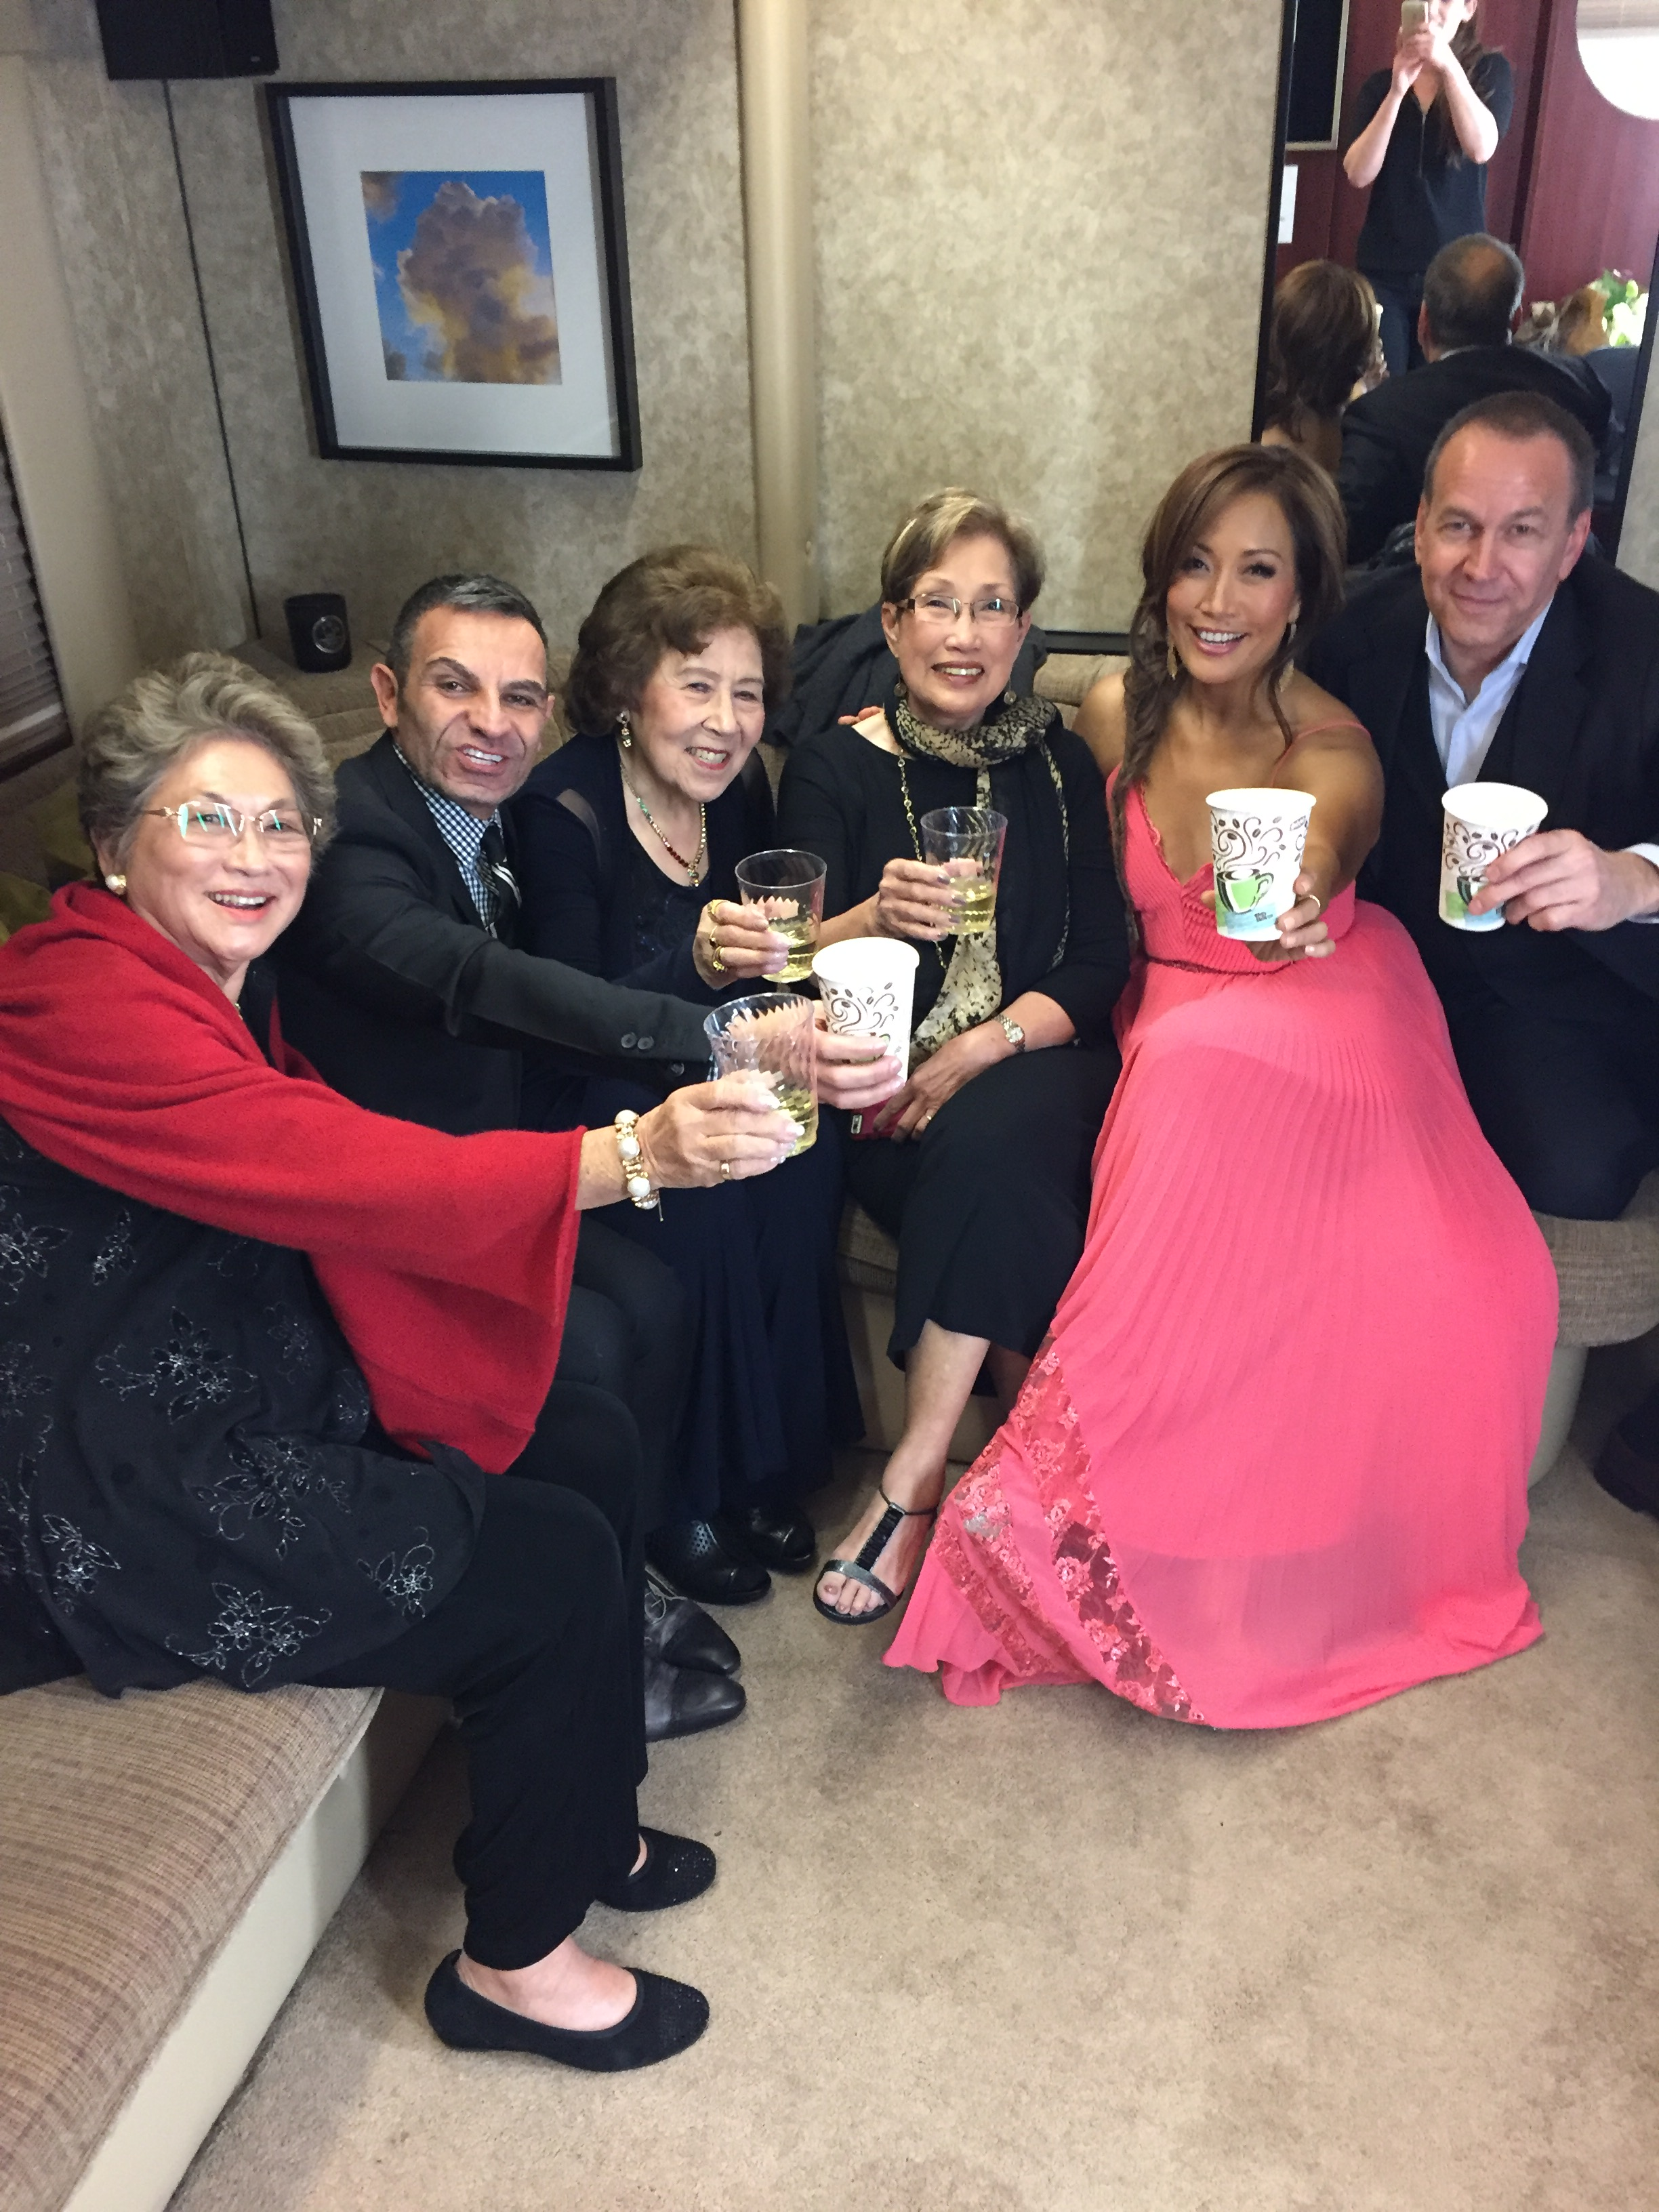 Carrie Ann Inaba's 'Dancing With the Stars' blog, Week 2 pic: Backstage at 'Dancing'